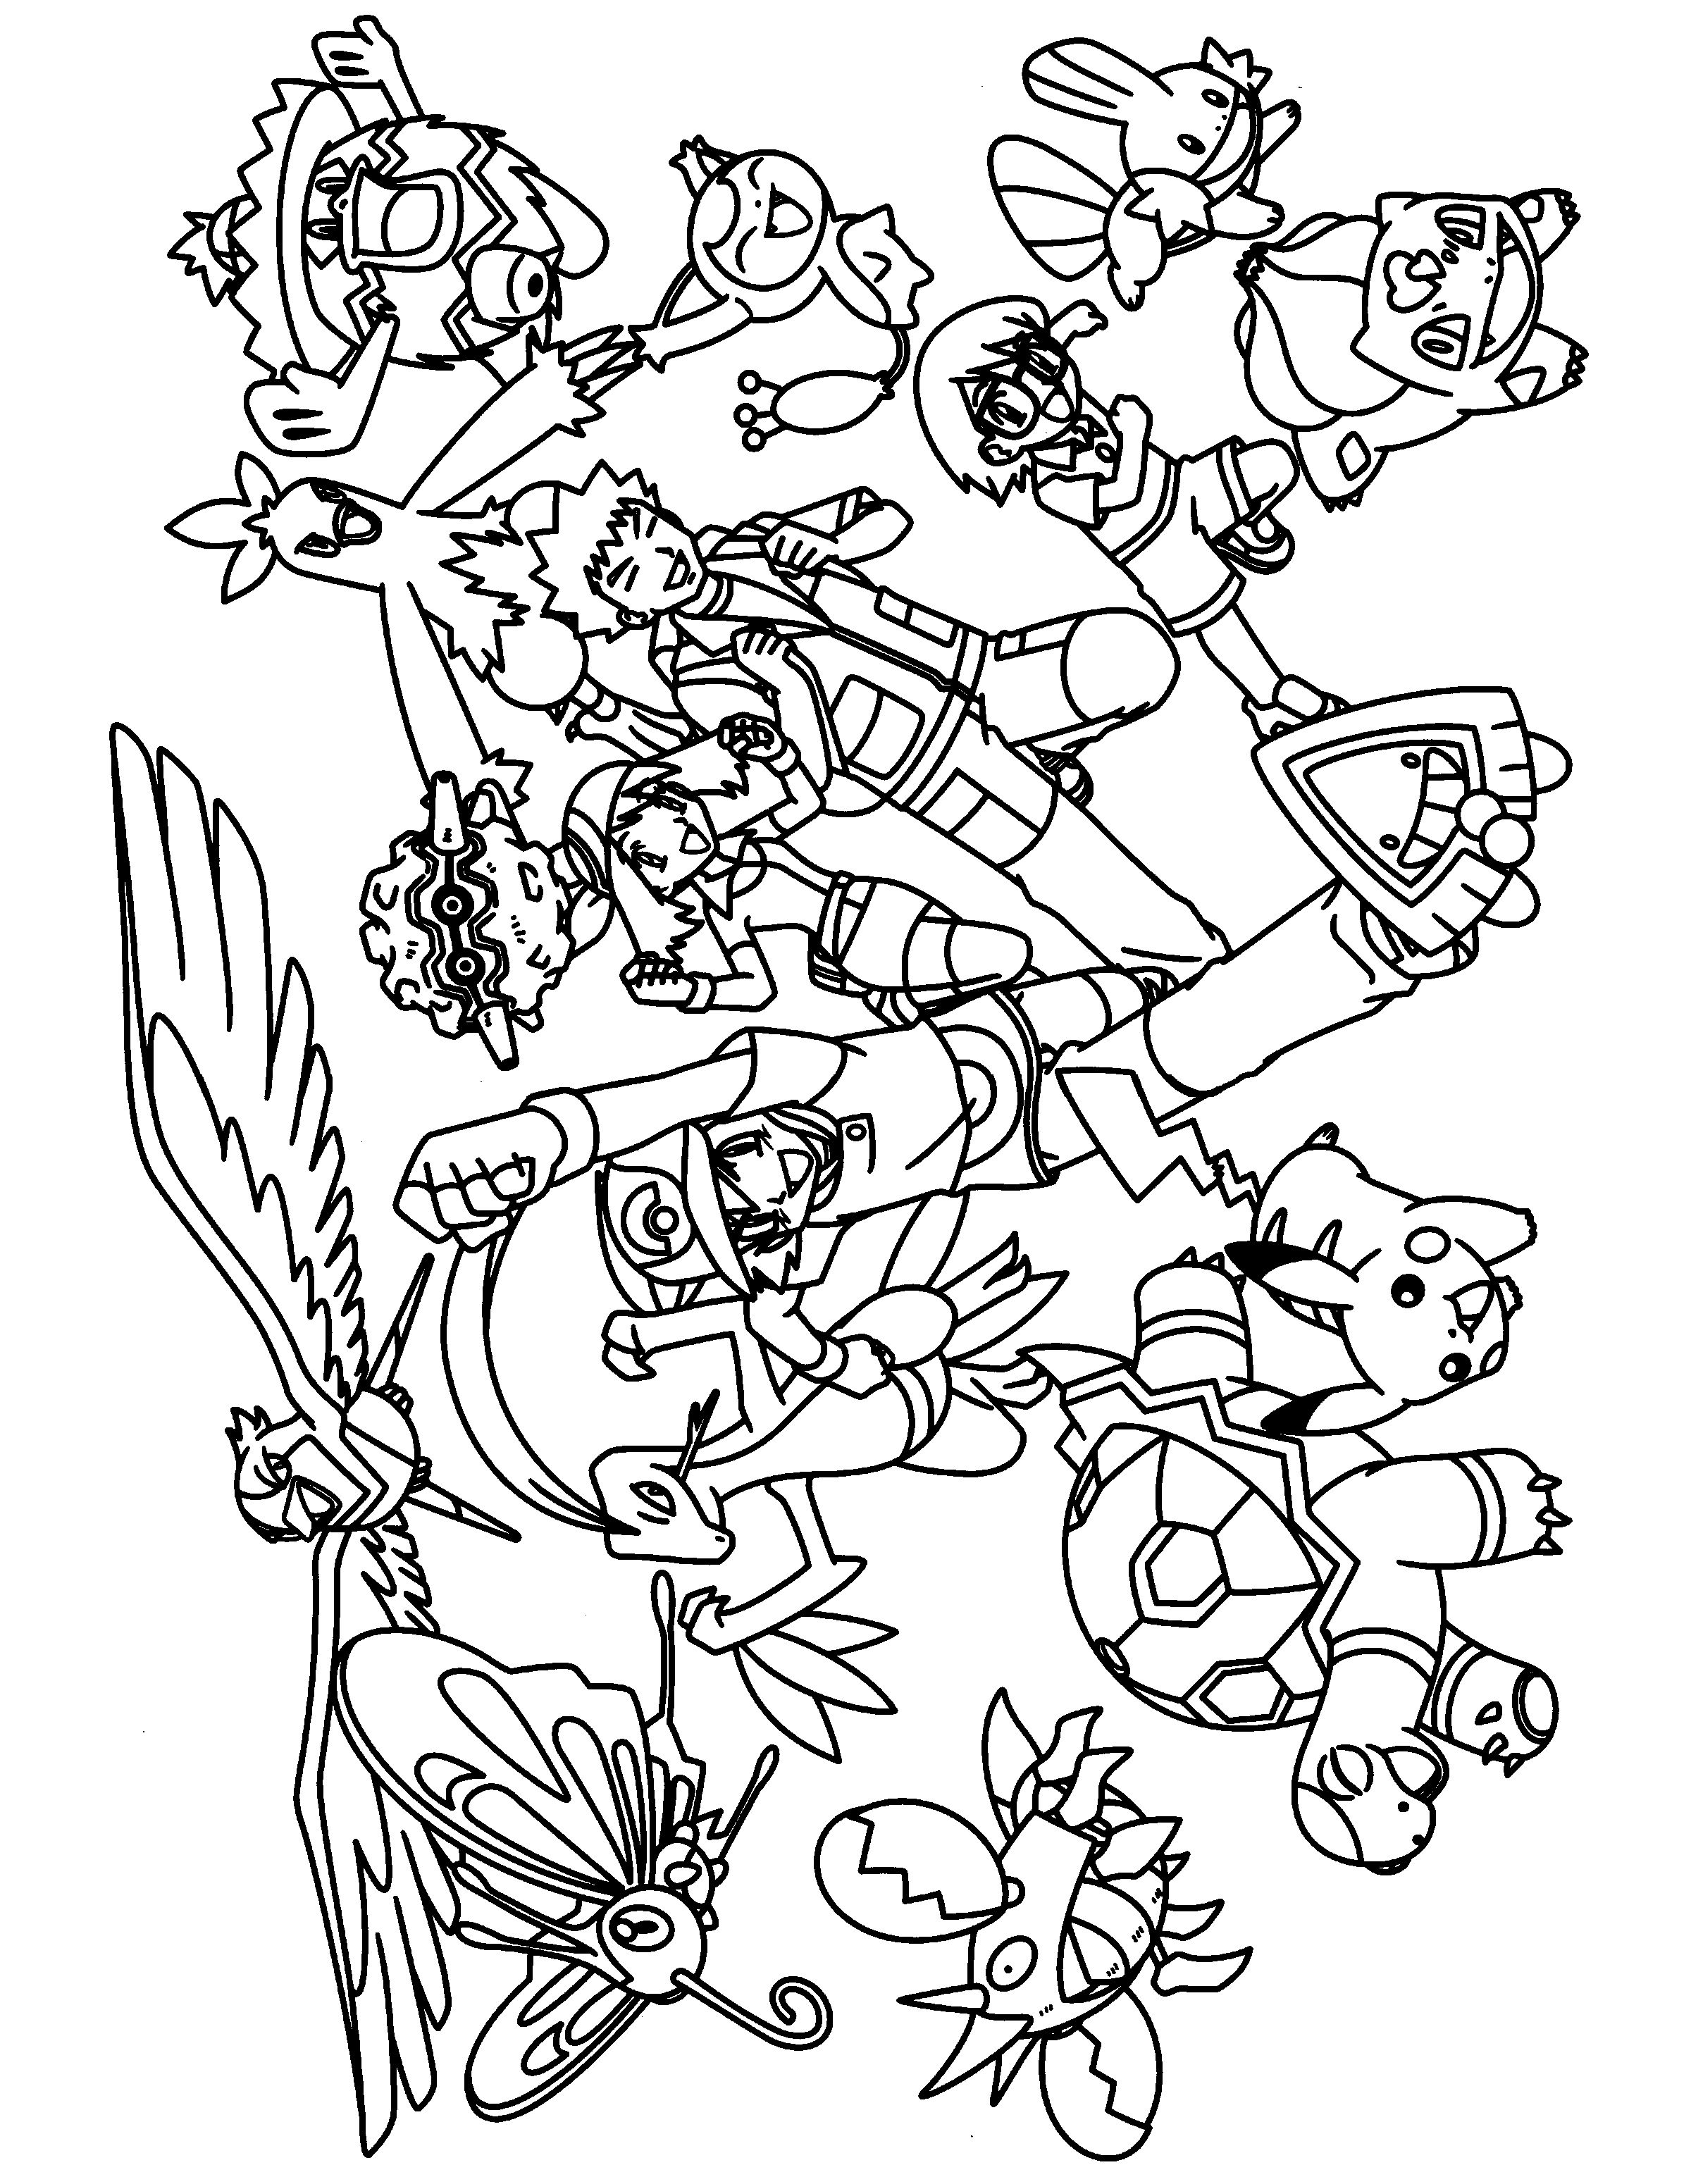 Coloring Pages Pokemon Pokemon Advanced Coloring Pages Coloringpages1001 Coloring Home Entitlementtrap Com Pokemon Coloring Pages Pokemon Coloring Coloring Pages